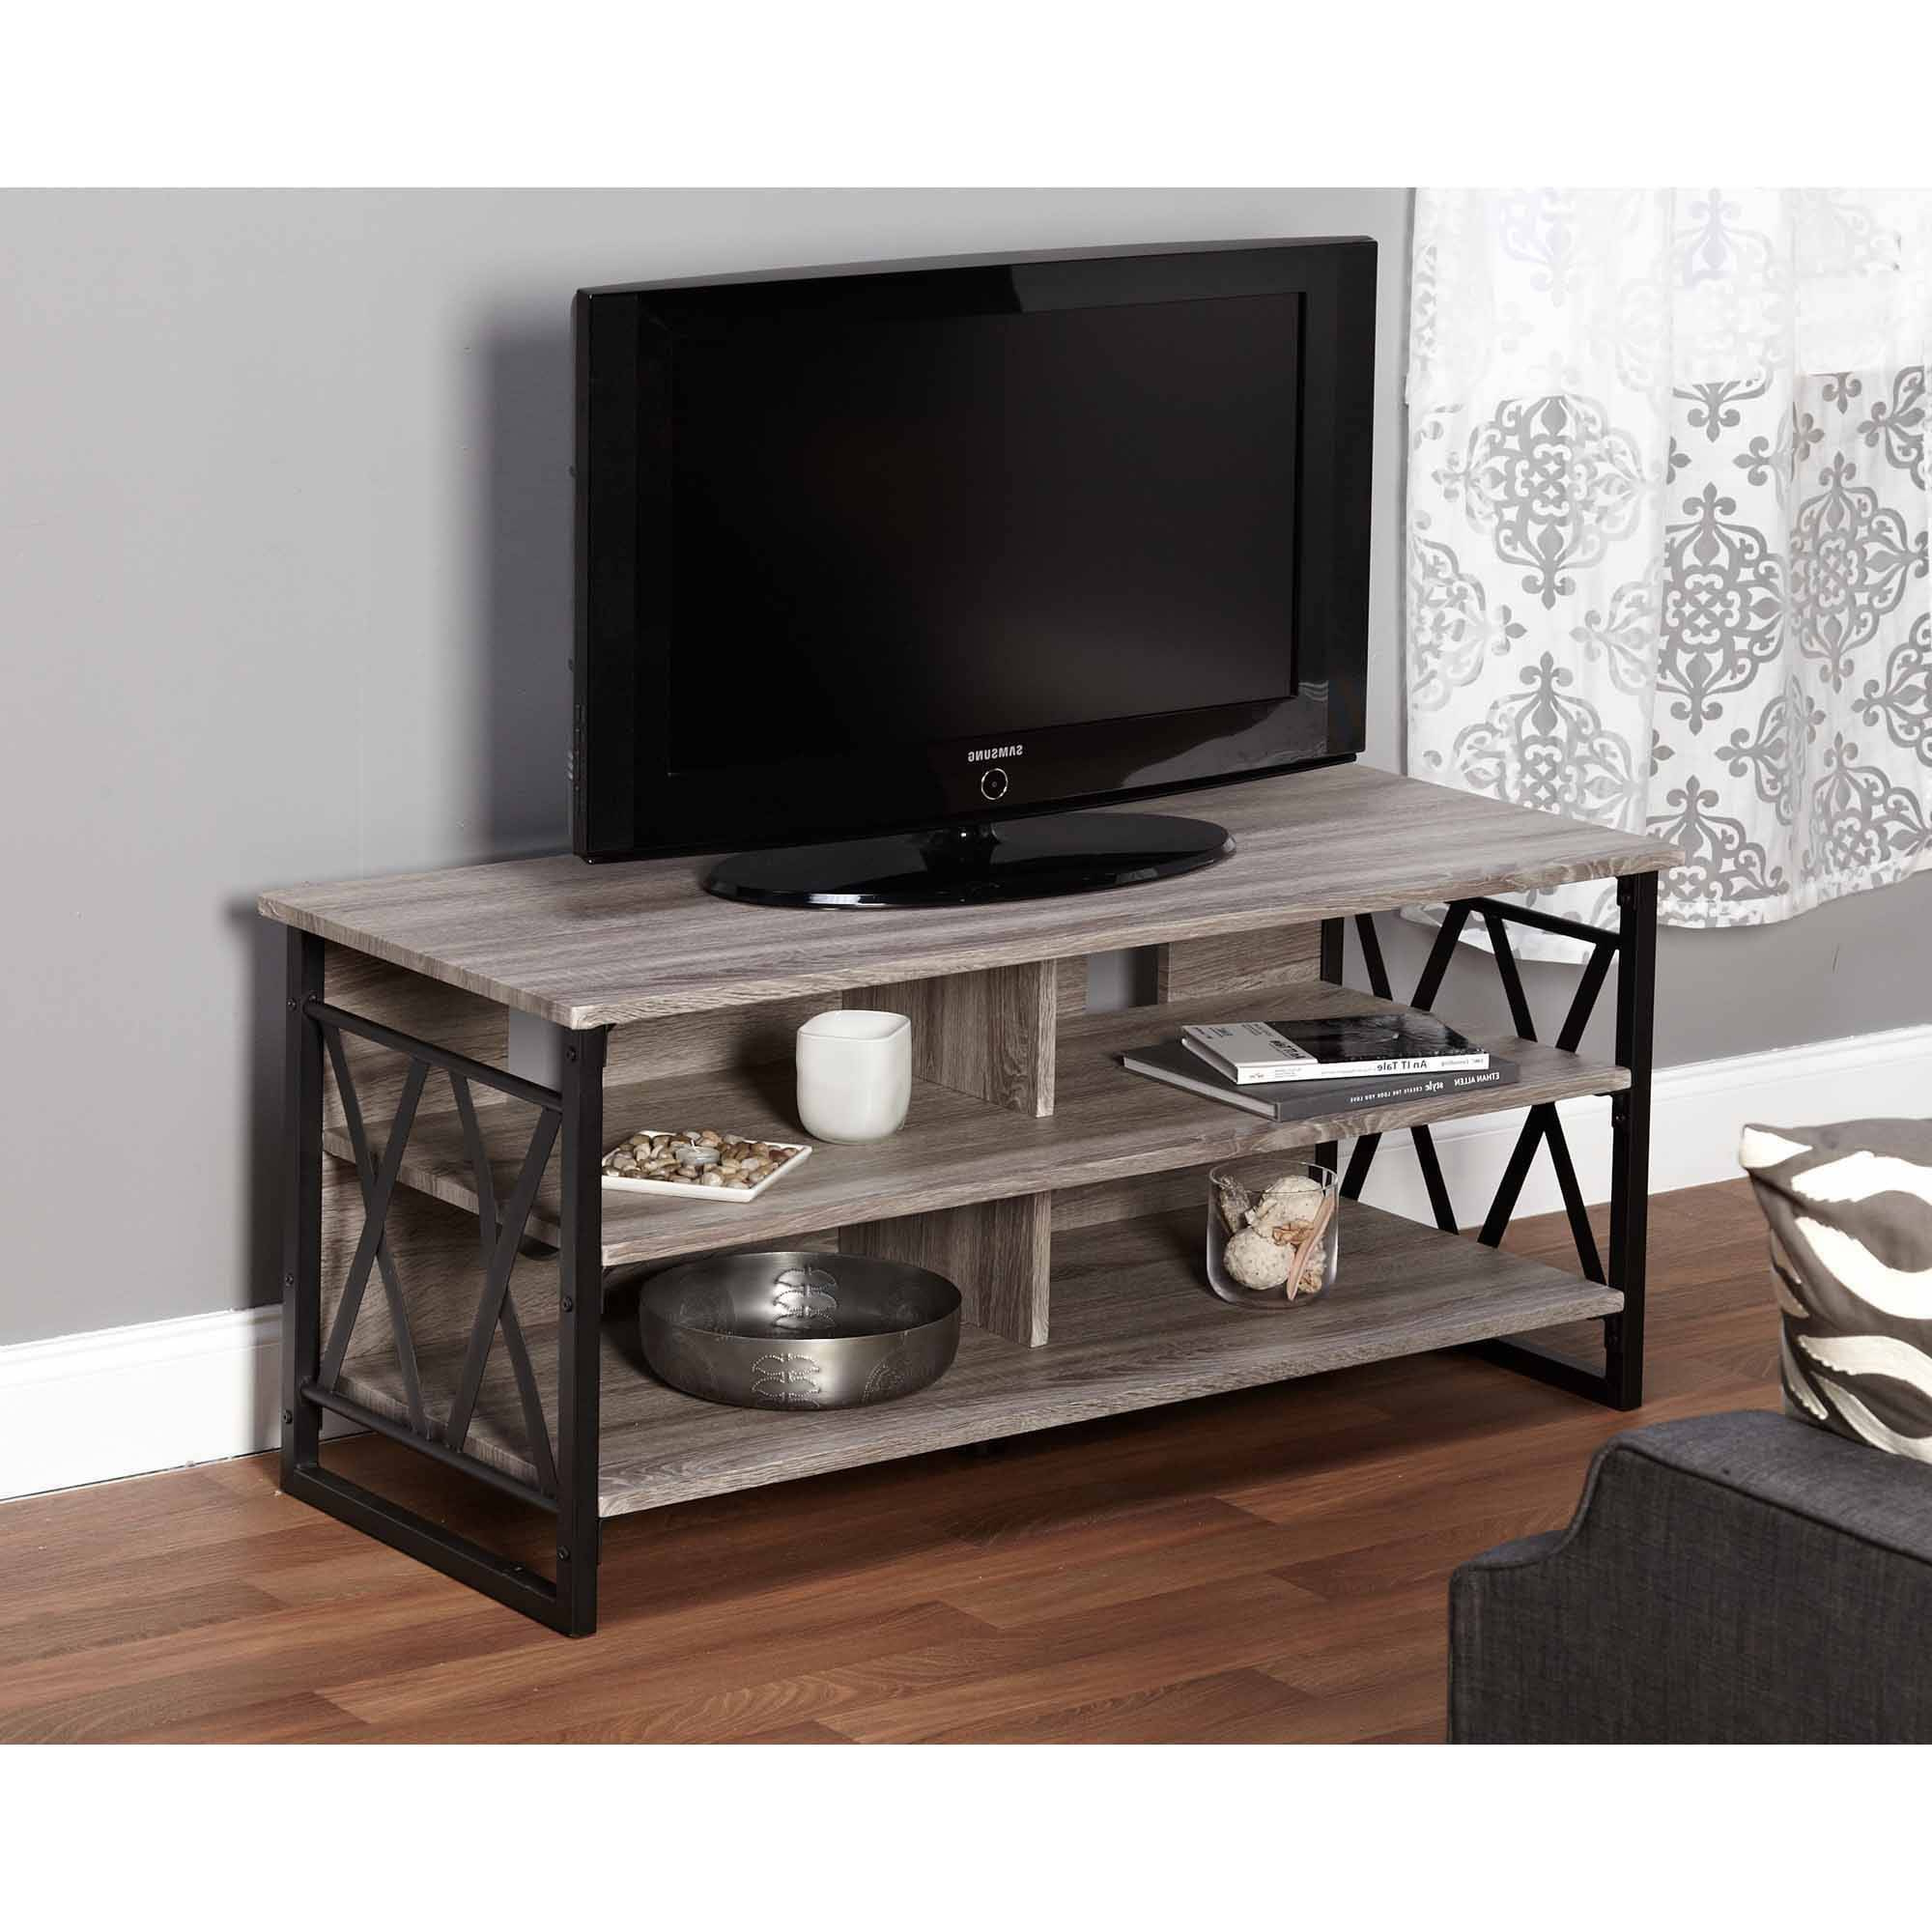 Tv Console With Wheels Gold Stand Metal India Rustic Industrial Inside Well Known Rustic 60 Inch Tv Stands (View 15 of 20)